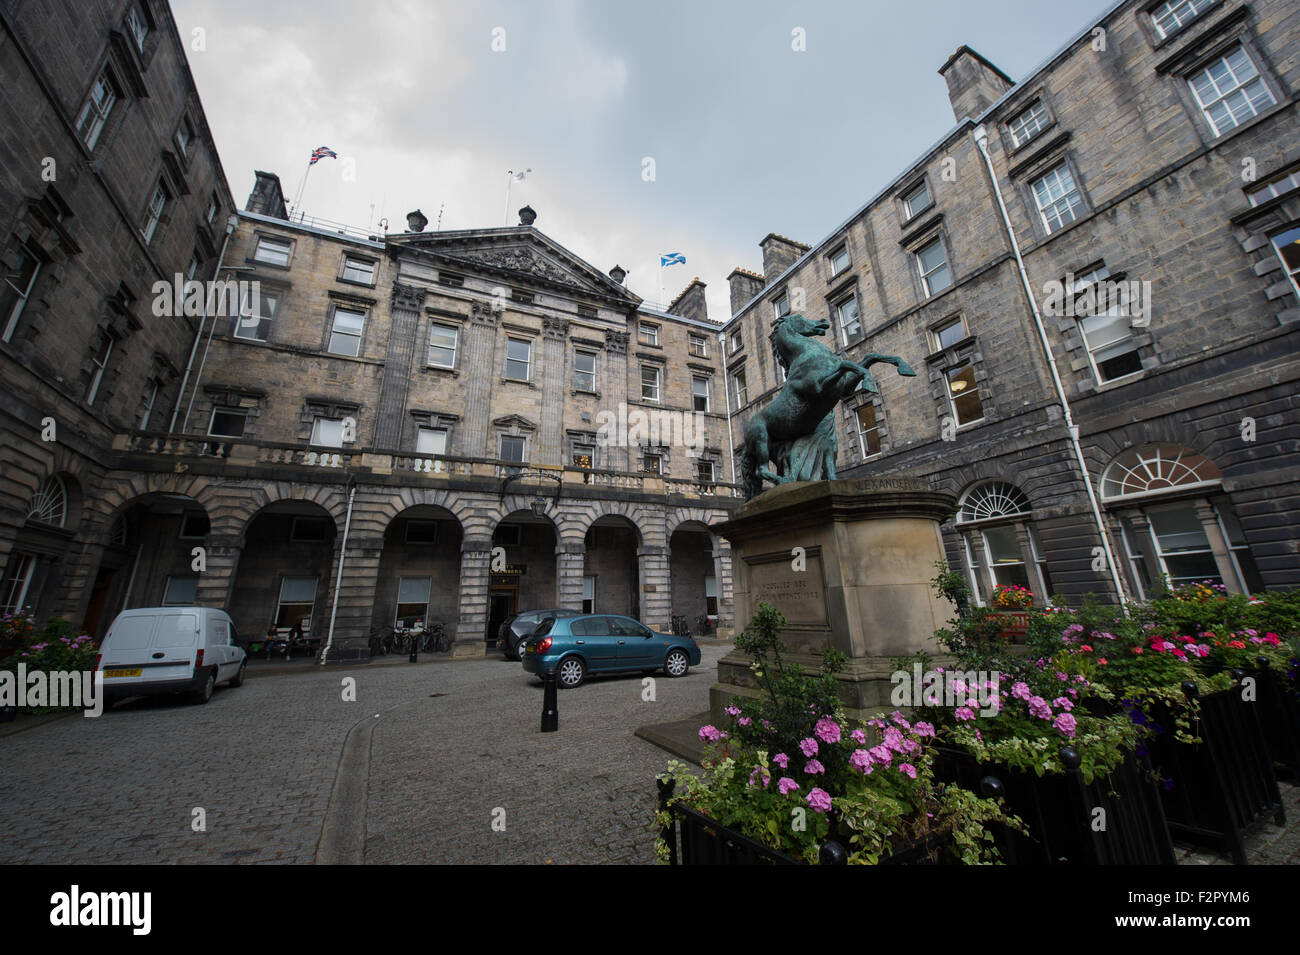 Edinburgh City Chambers on the Royal Mile where the City of Edinburgh Council is based. - Stock Image